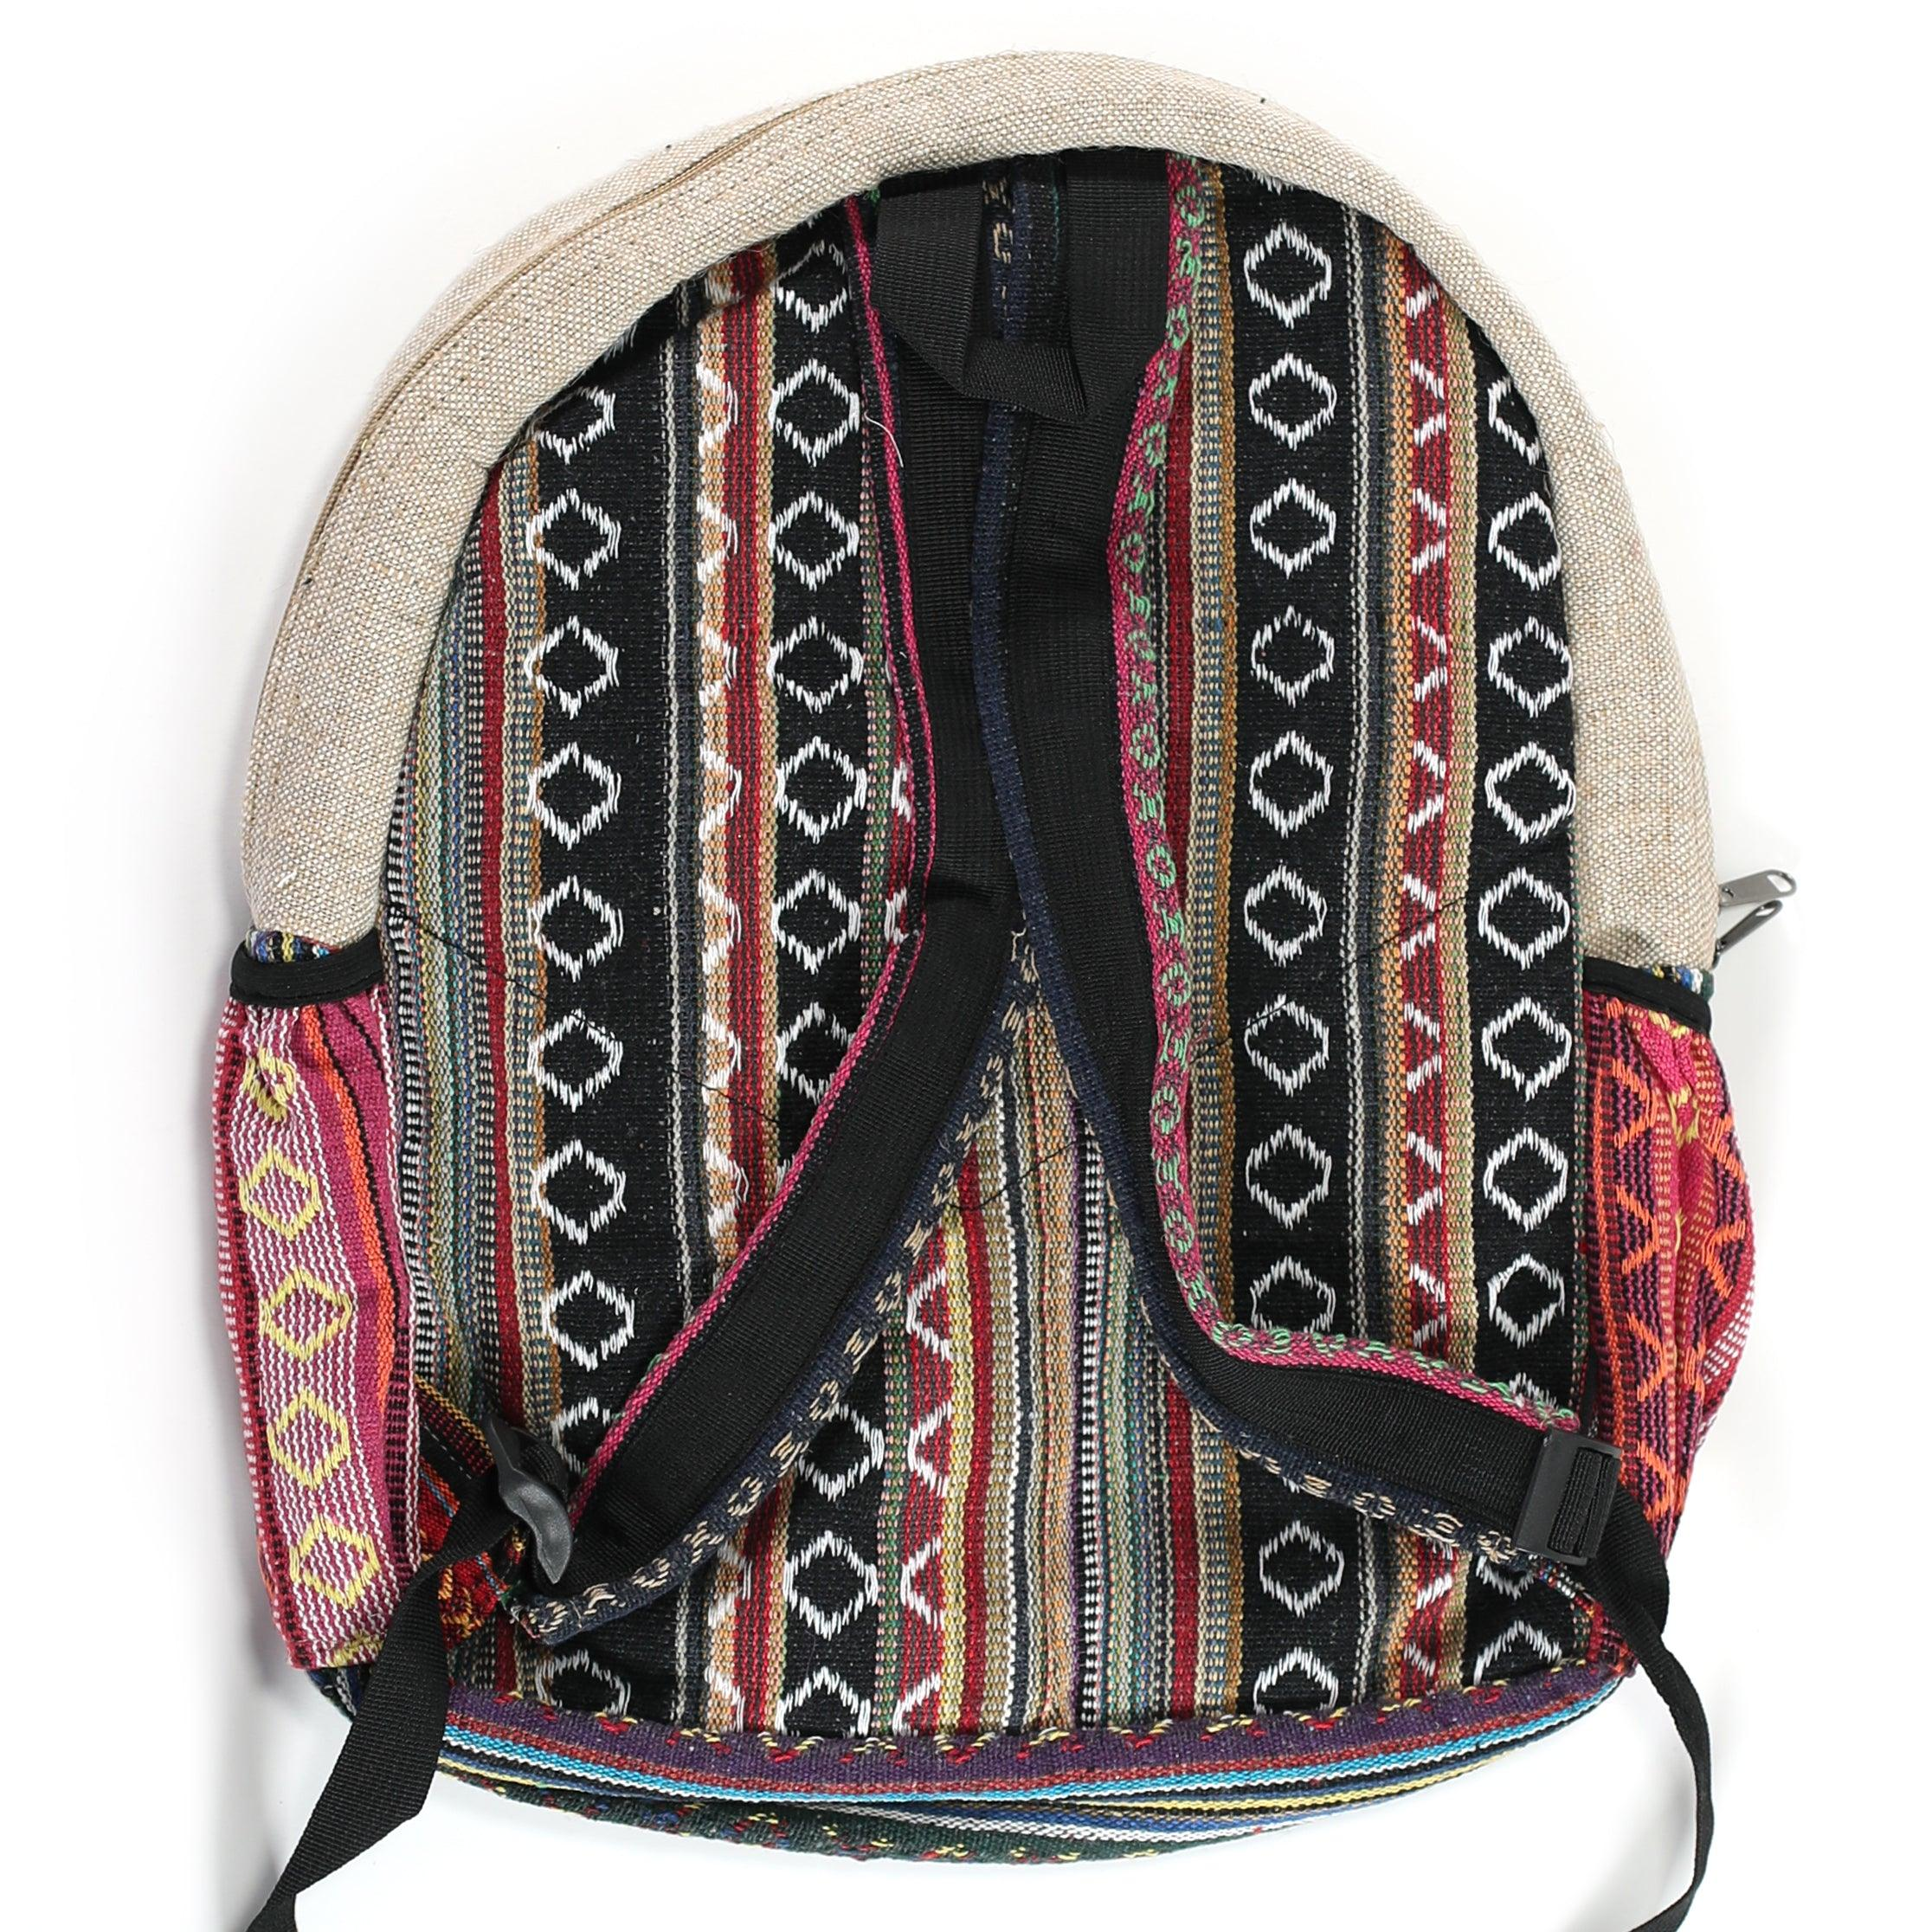 Hemp Backpack (6 photos) - Photography and Web Design - Los Angeles, US based Shopify Experts Revo Designs